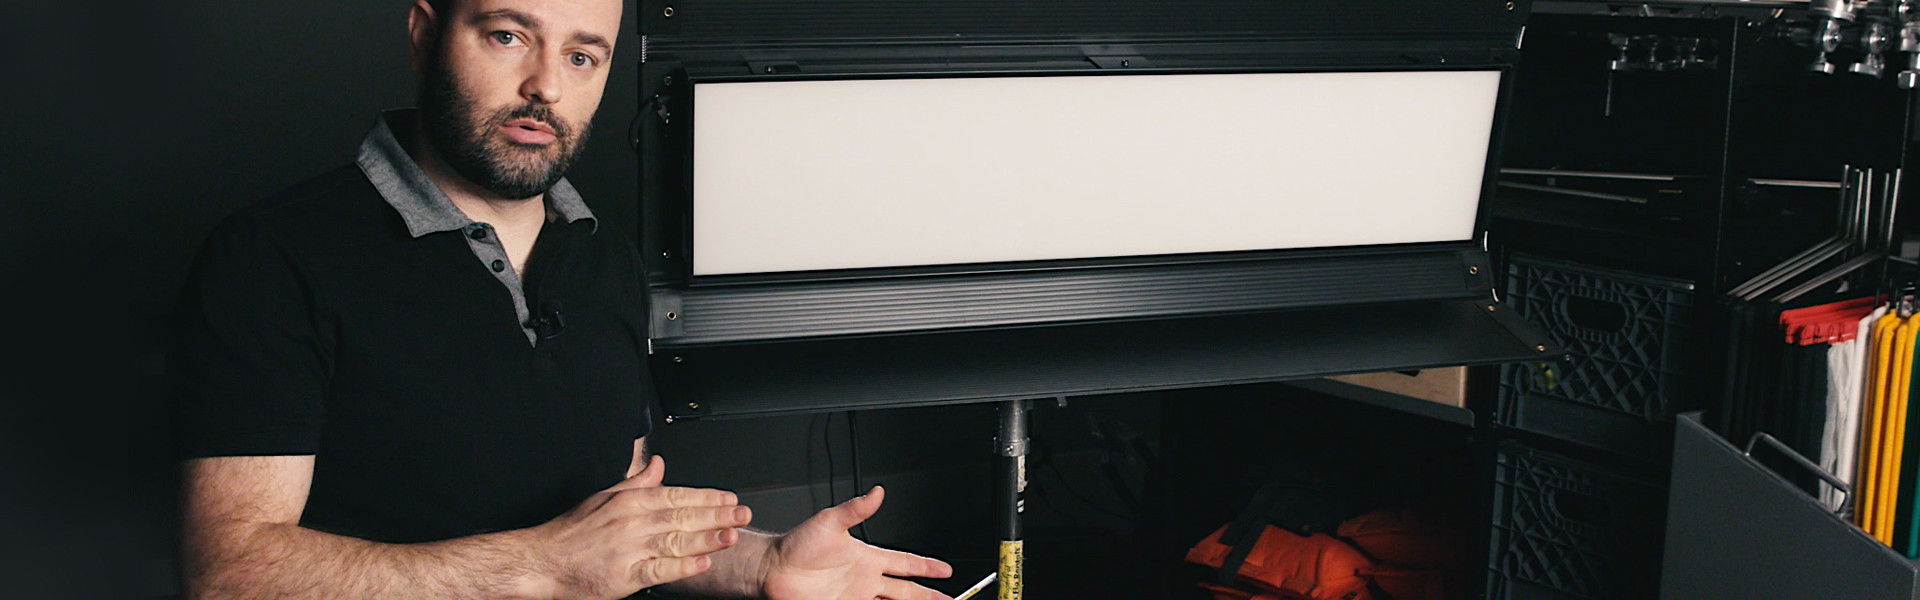 Header image for article At the Bench with Jem Schofield: Kino Flo Select 30 LED System